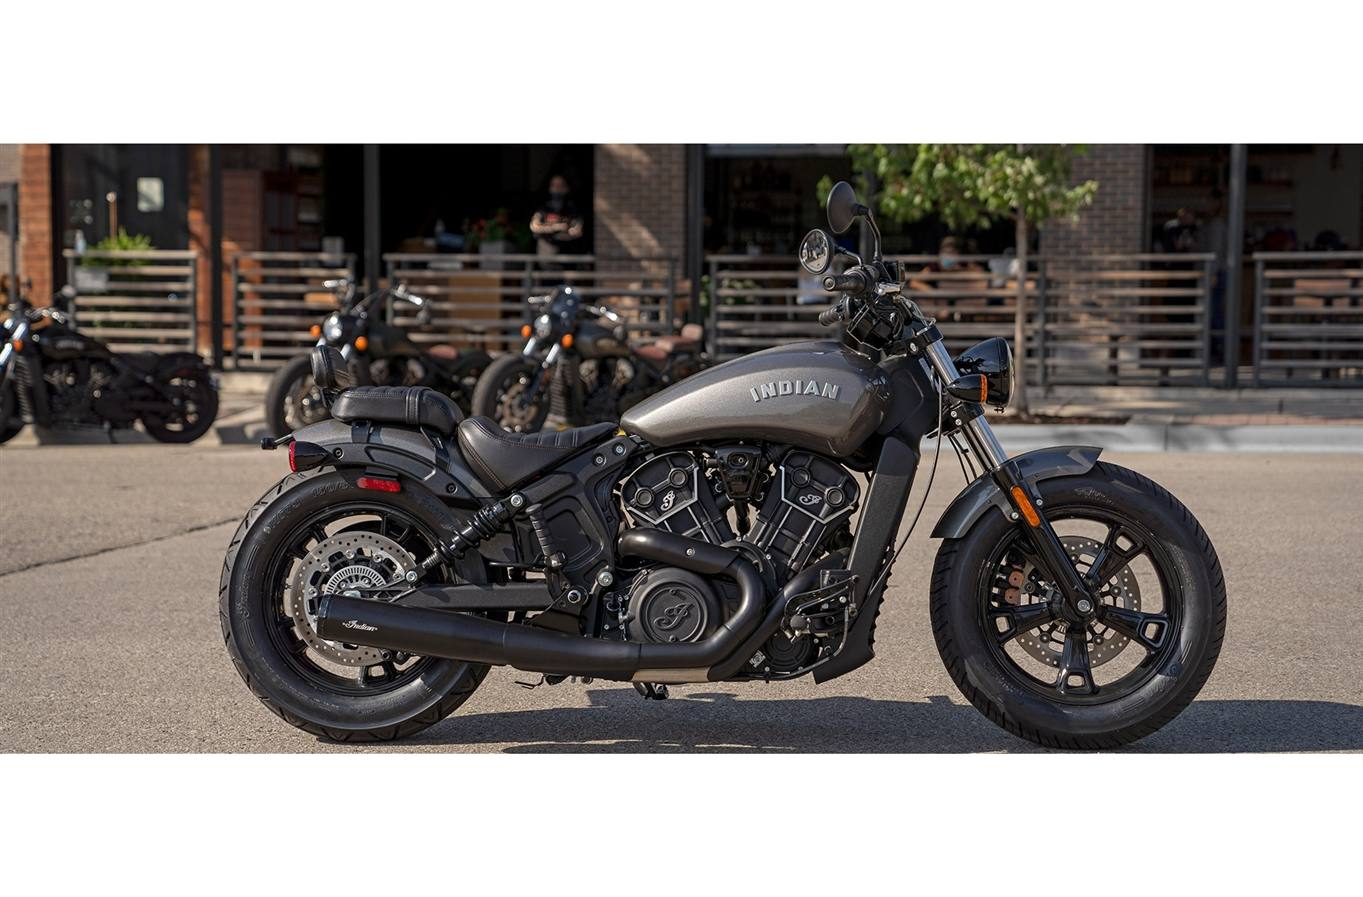 2021 Indian Motorcycle Indian Scout Bobber Sixty Abs Color Option For Sale In Westshore Bc Imc Victoria Victoria Bc 250 474 2088